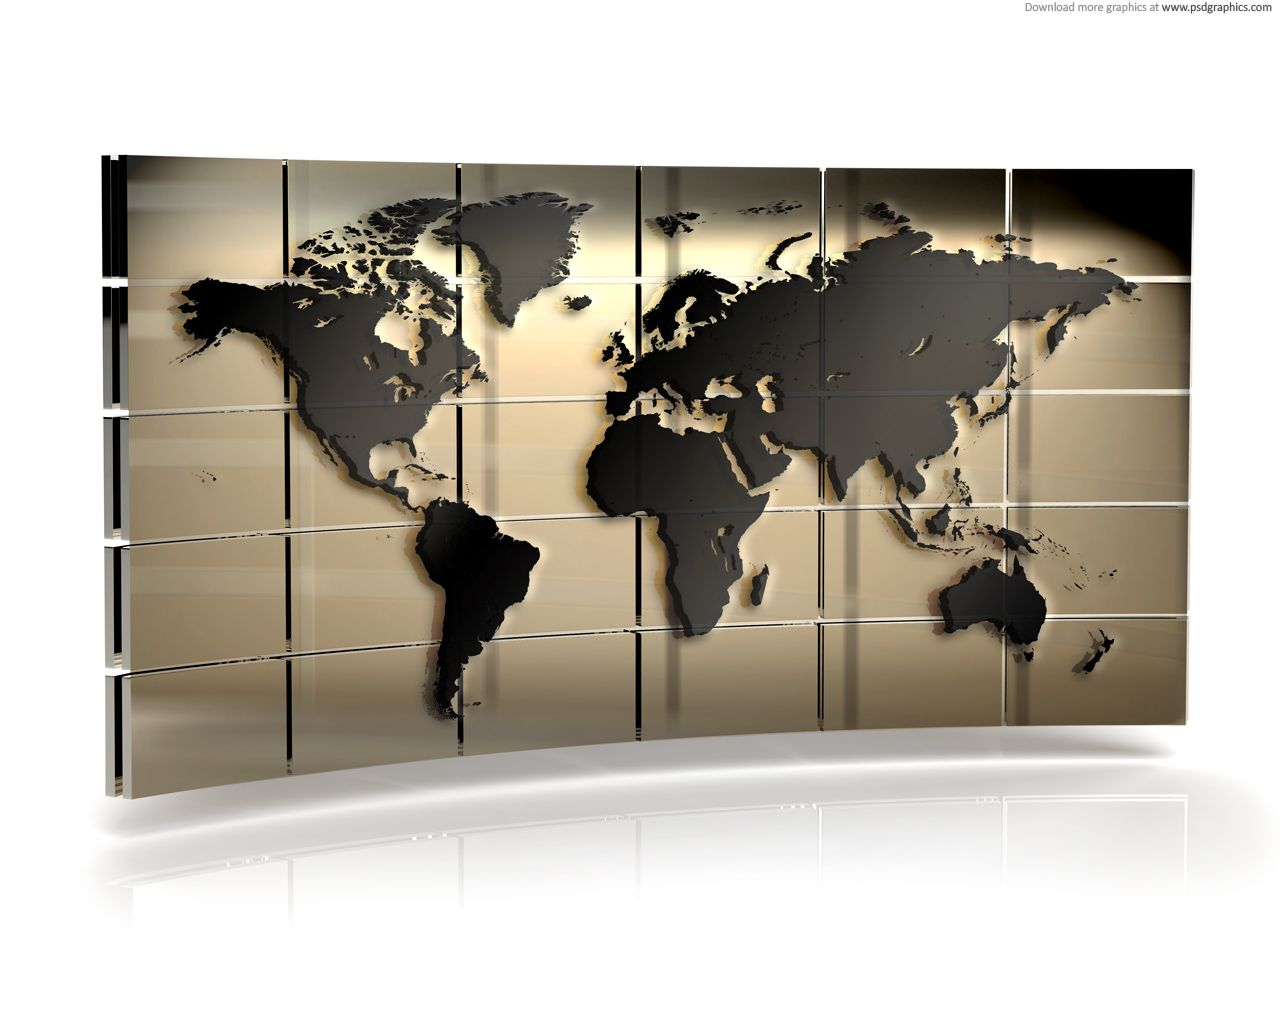 World map wall background background textures pinterest world map wall background gumiabroncs Choice Image